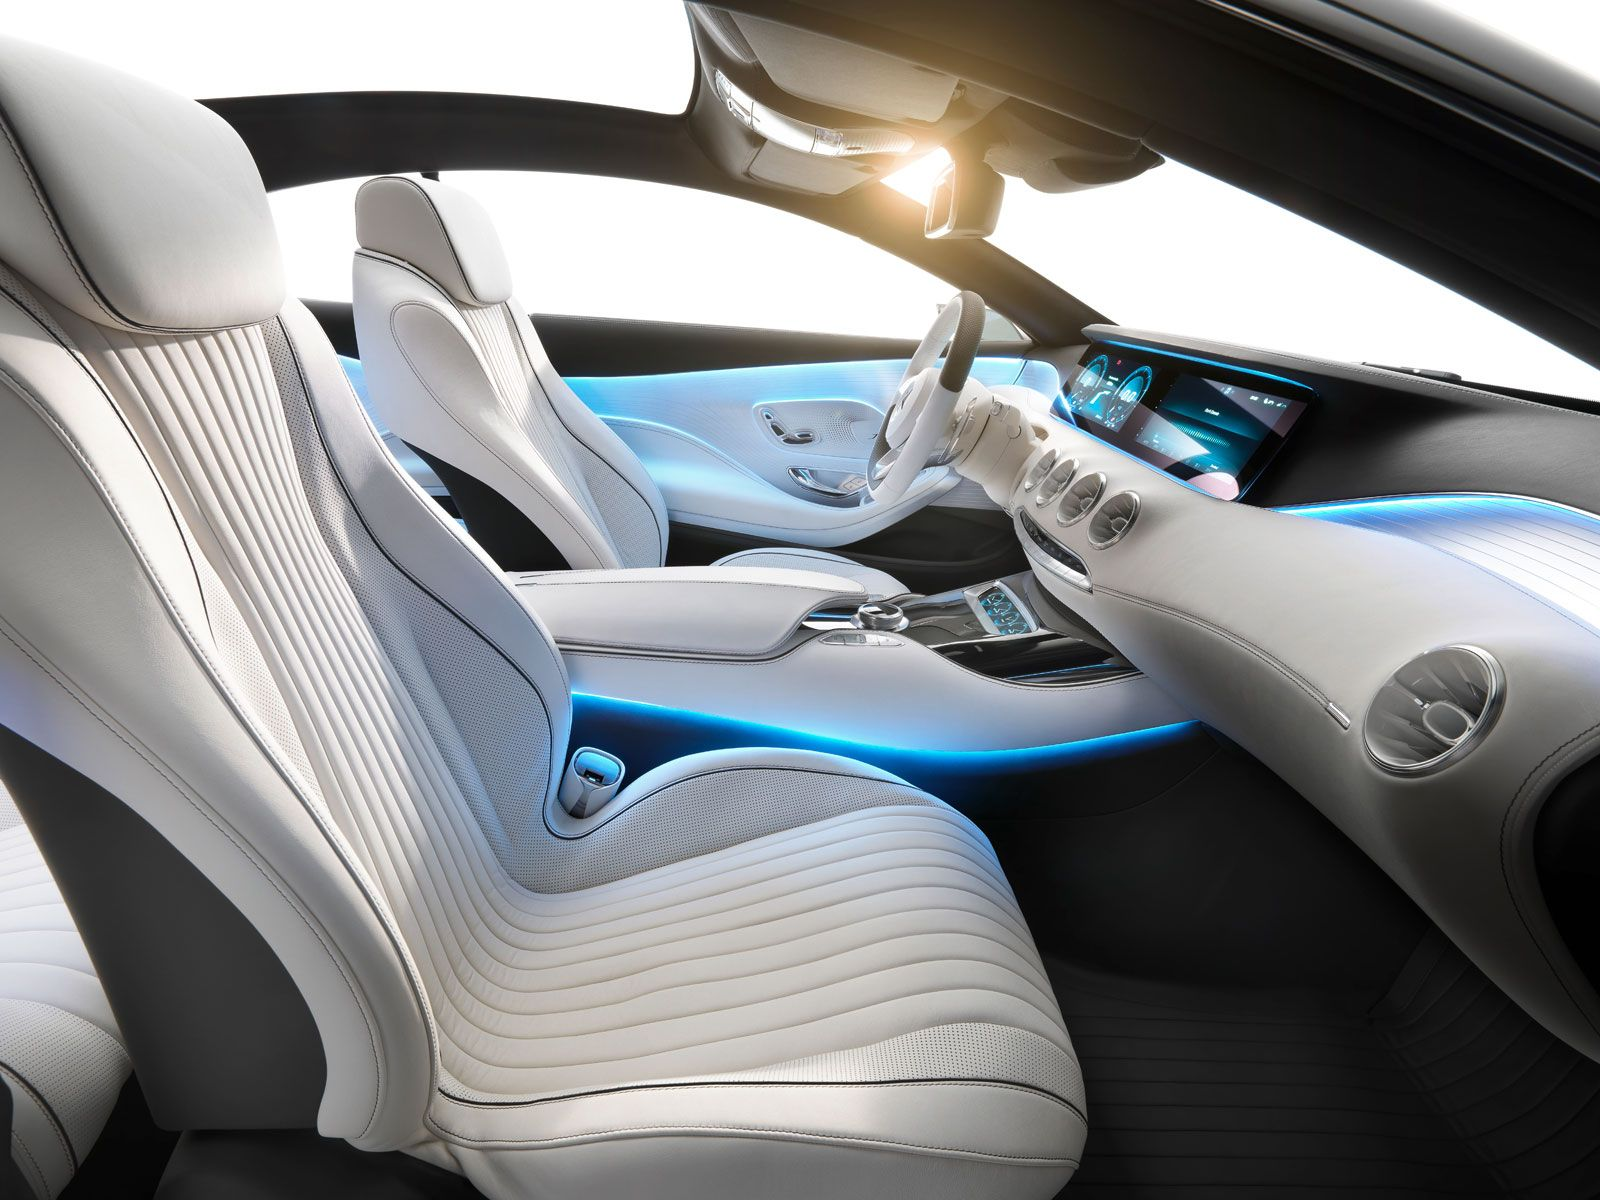 Lg will build a stereo camera system for driverless mercedes benz cars mercedes s classmercedes